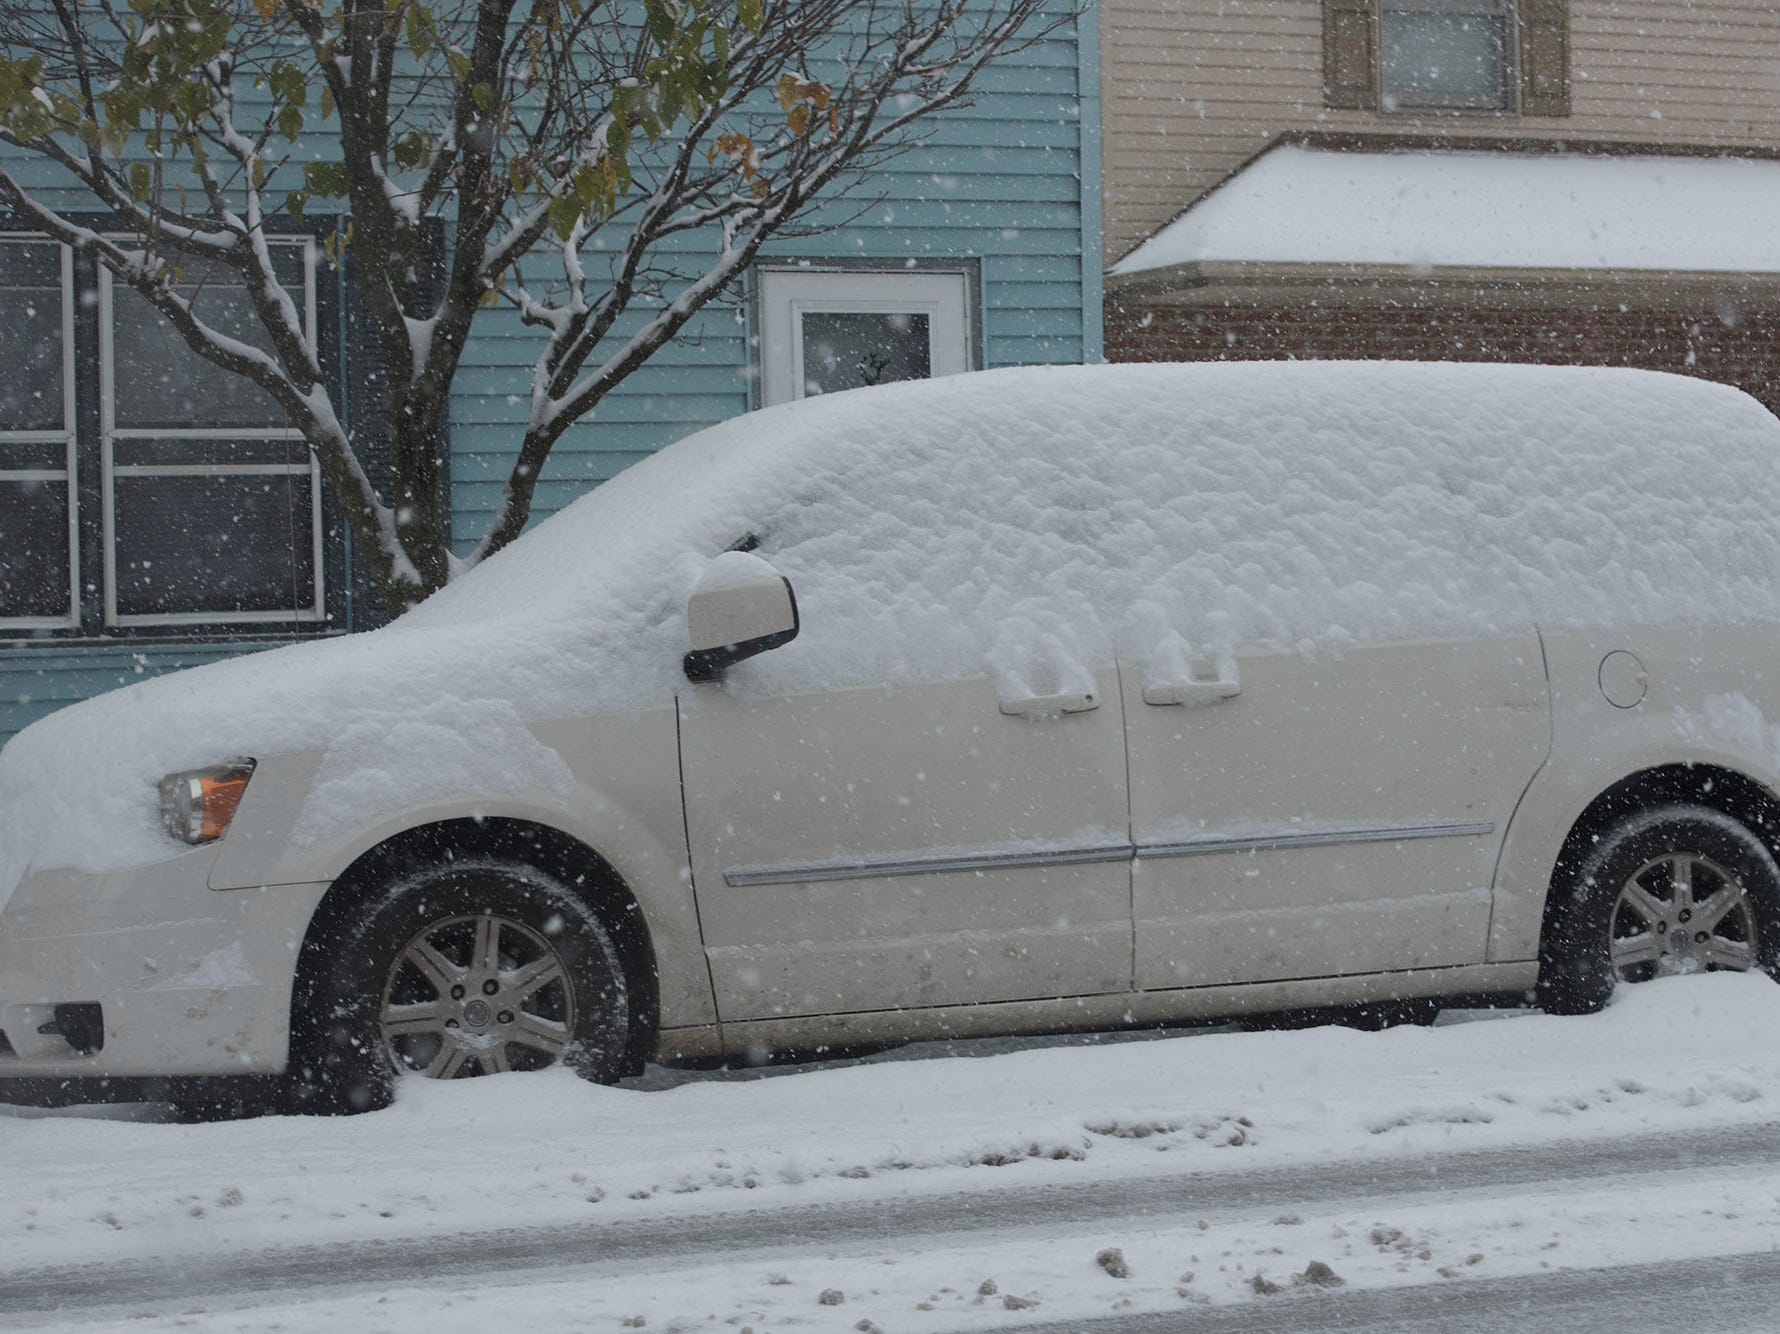 A snow-covered minivan is seen in in Greencastle. Snow started in Franklin County on Thursday morning, November 15, 2018.